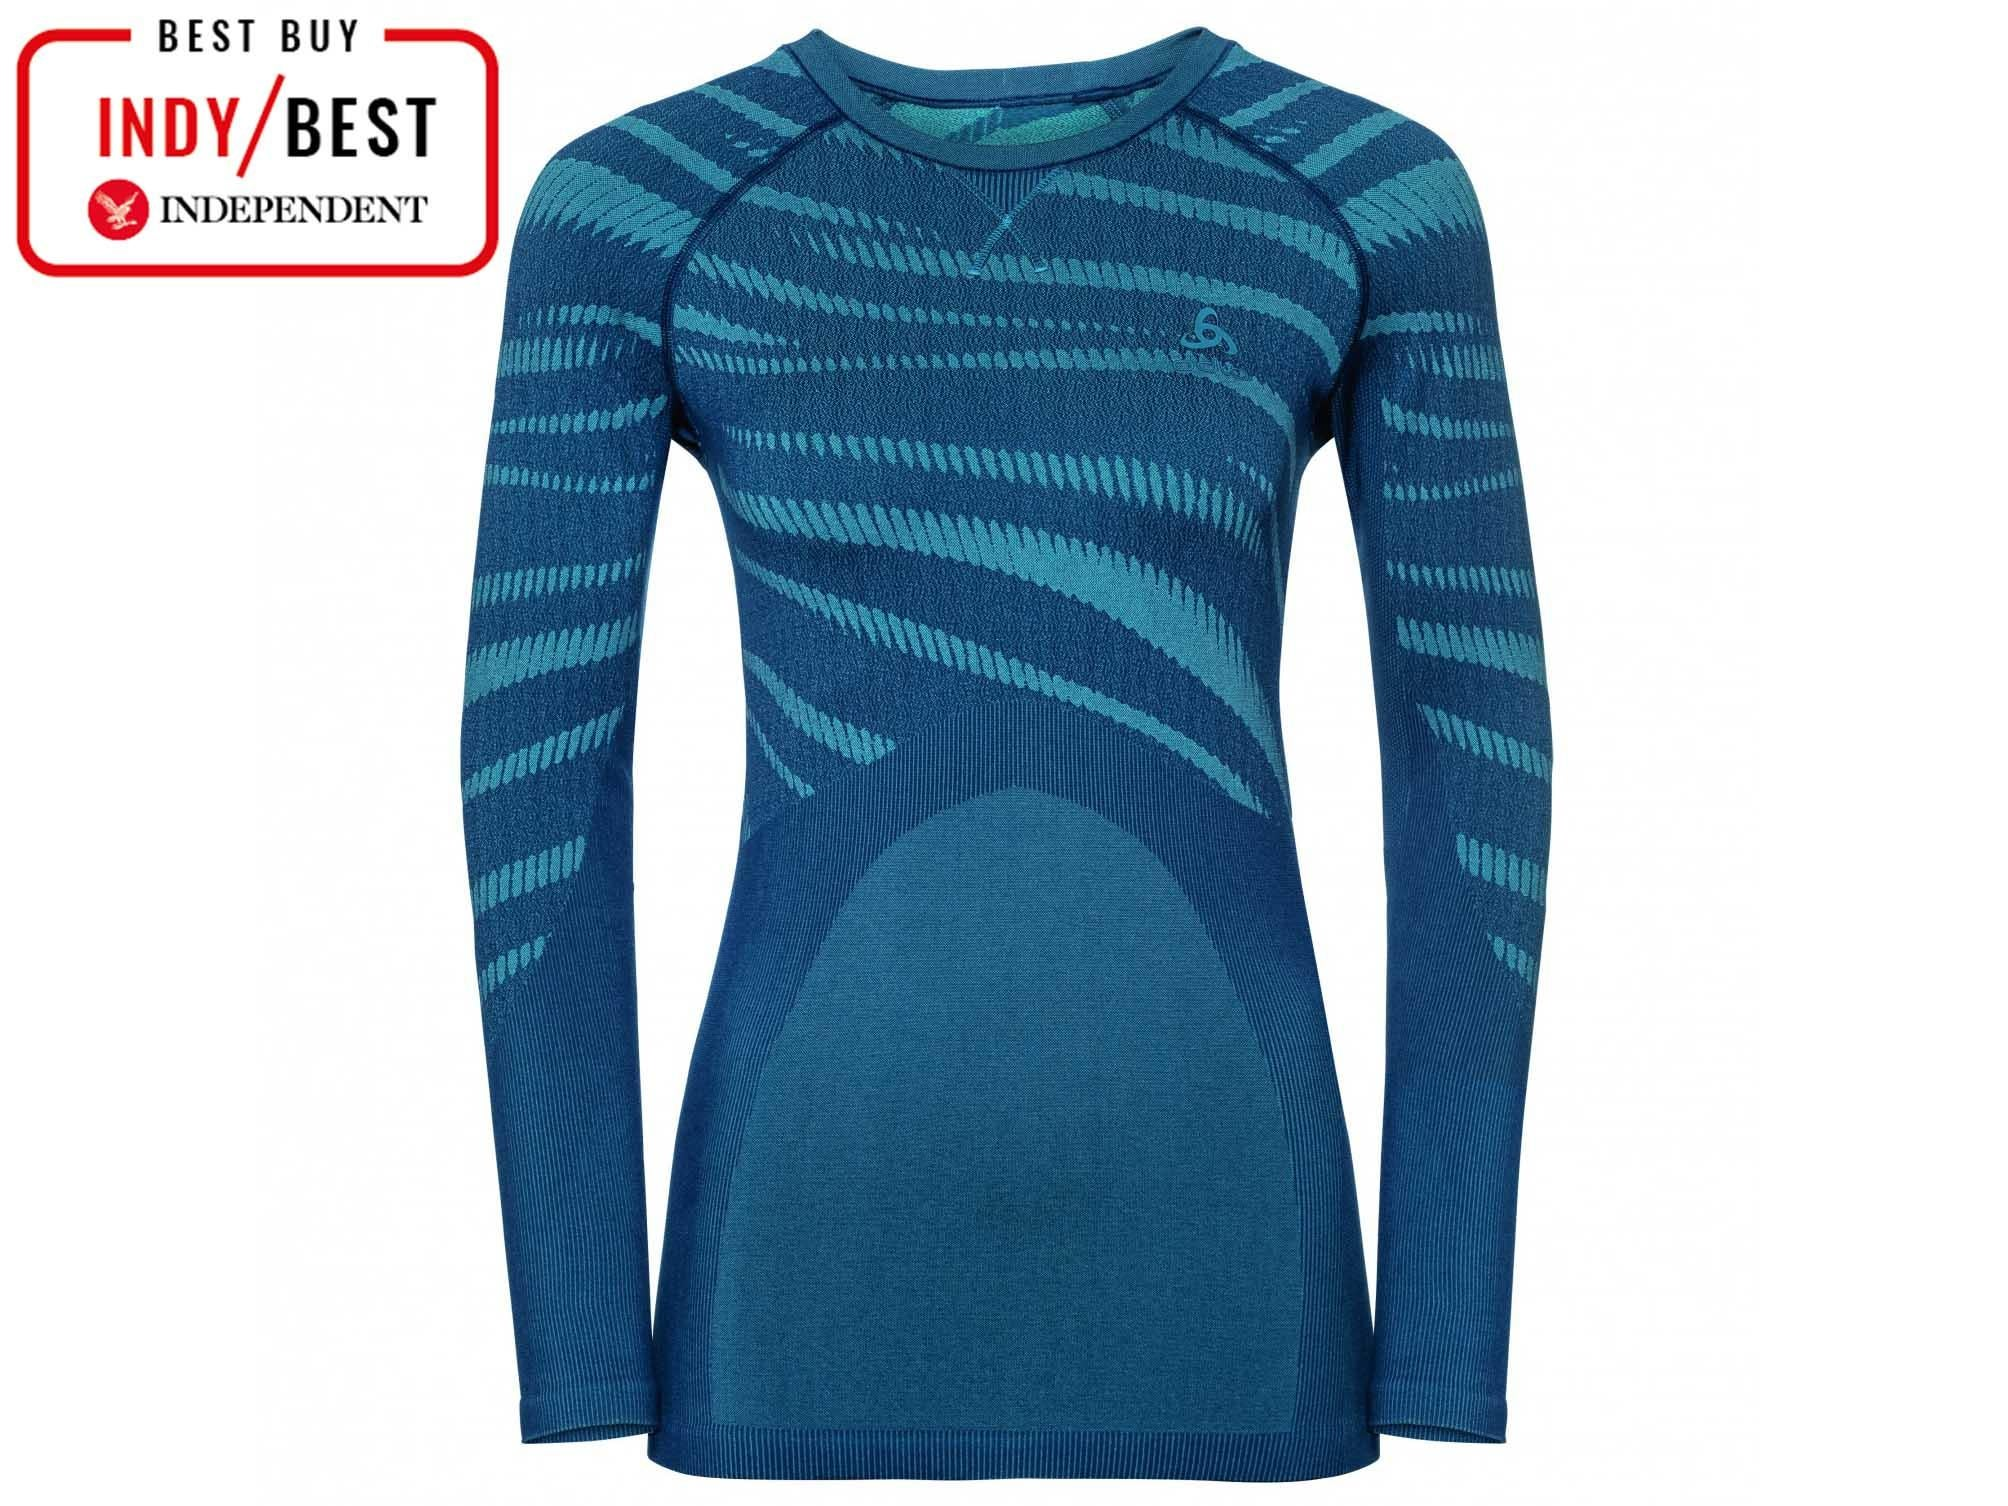 9 best ski base layers for women  5982842a5b